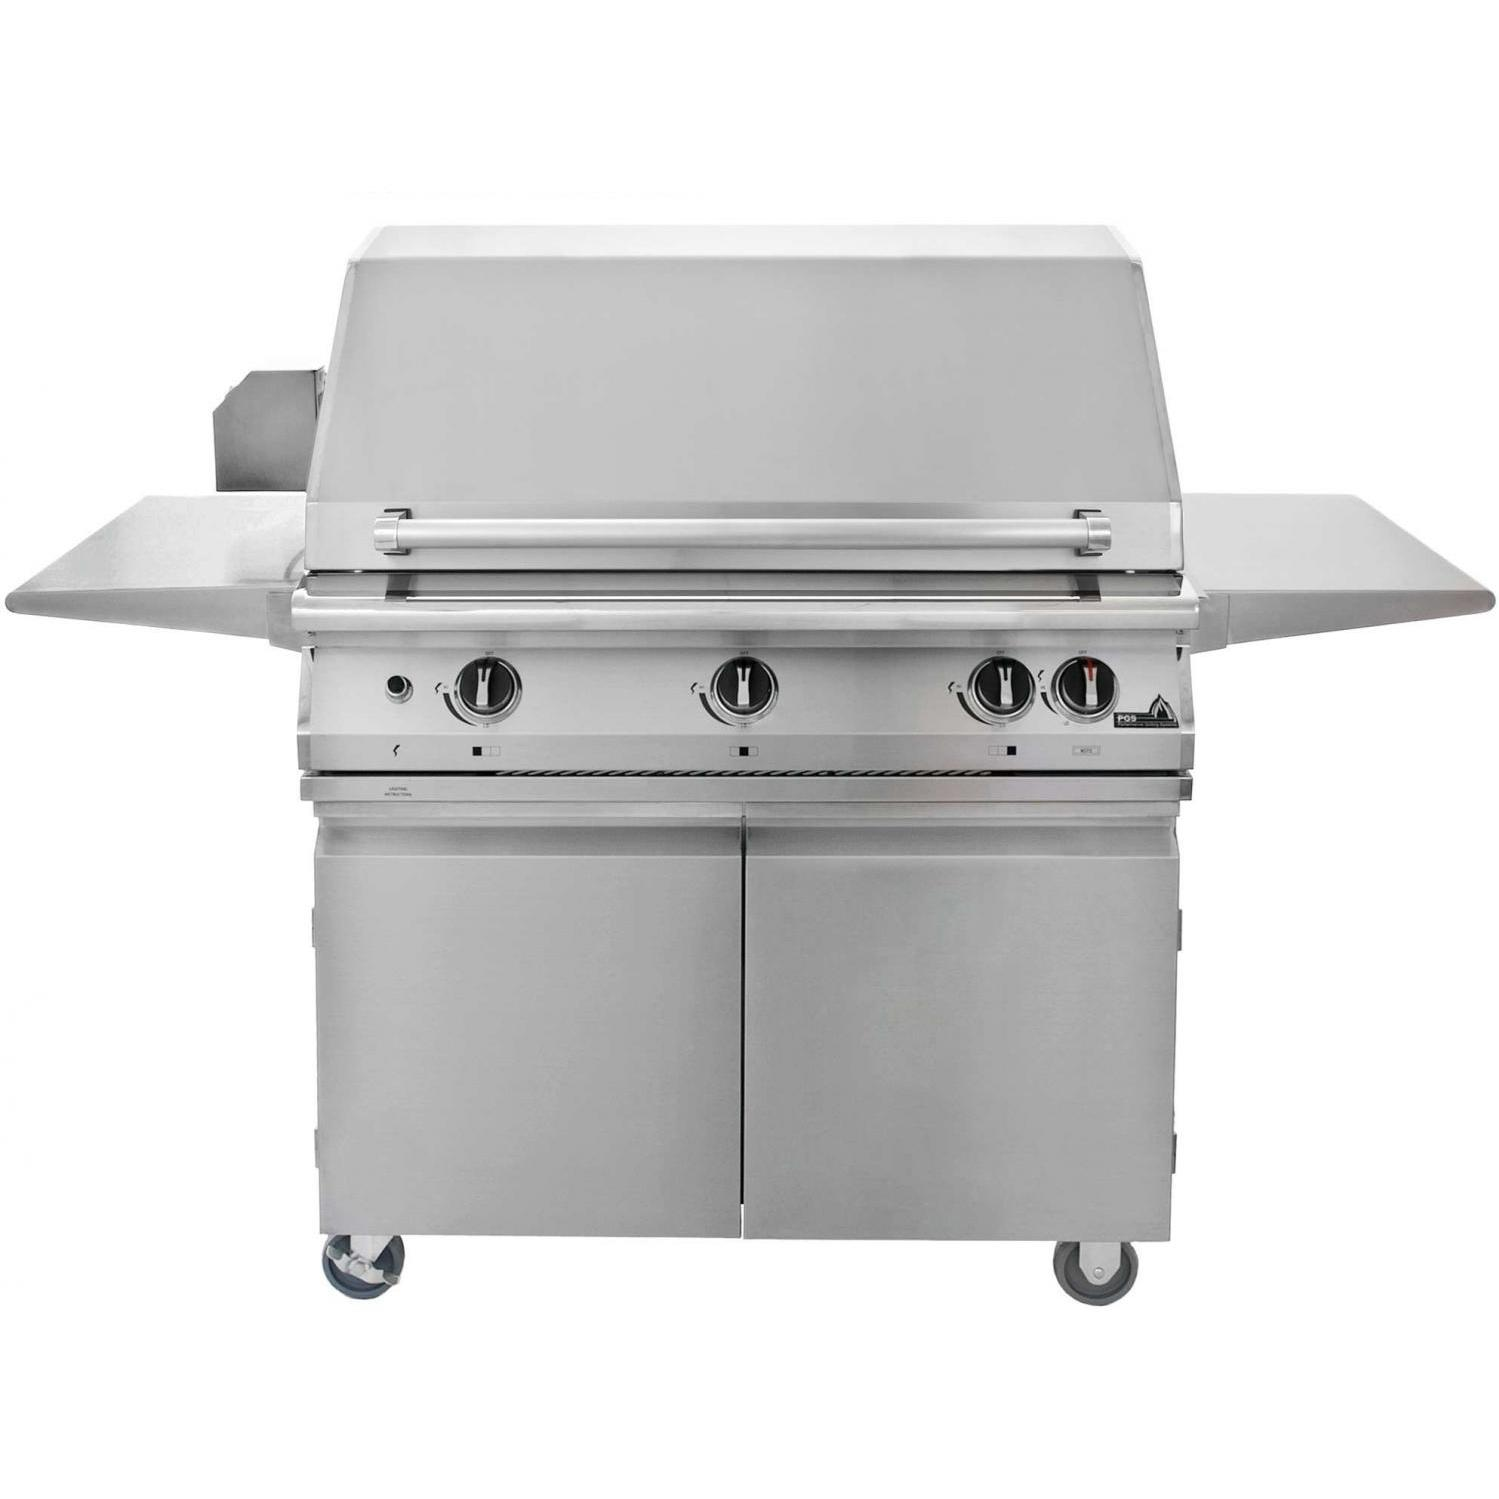 PGS Legacy Pacifica Gourmet 39-Inch Propane Gas Grill With Infrared Rear Burner And Rotisserie On Cart 363464